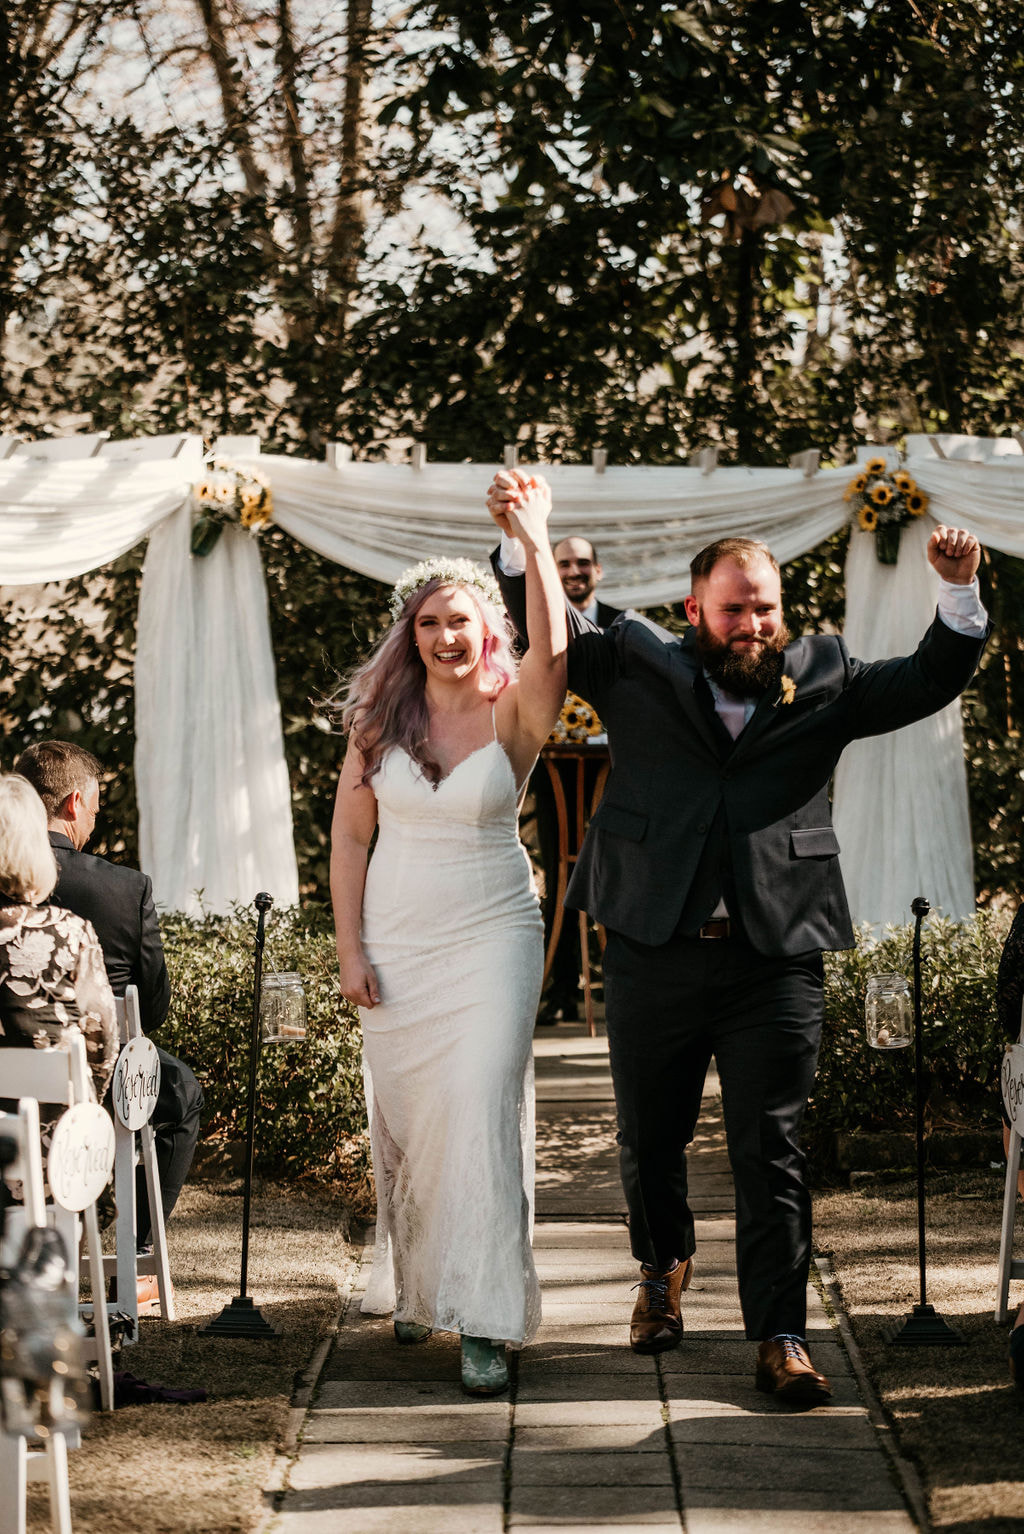 couple holds hands up in celebration together after wedding ceremony